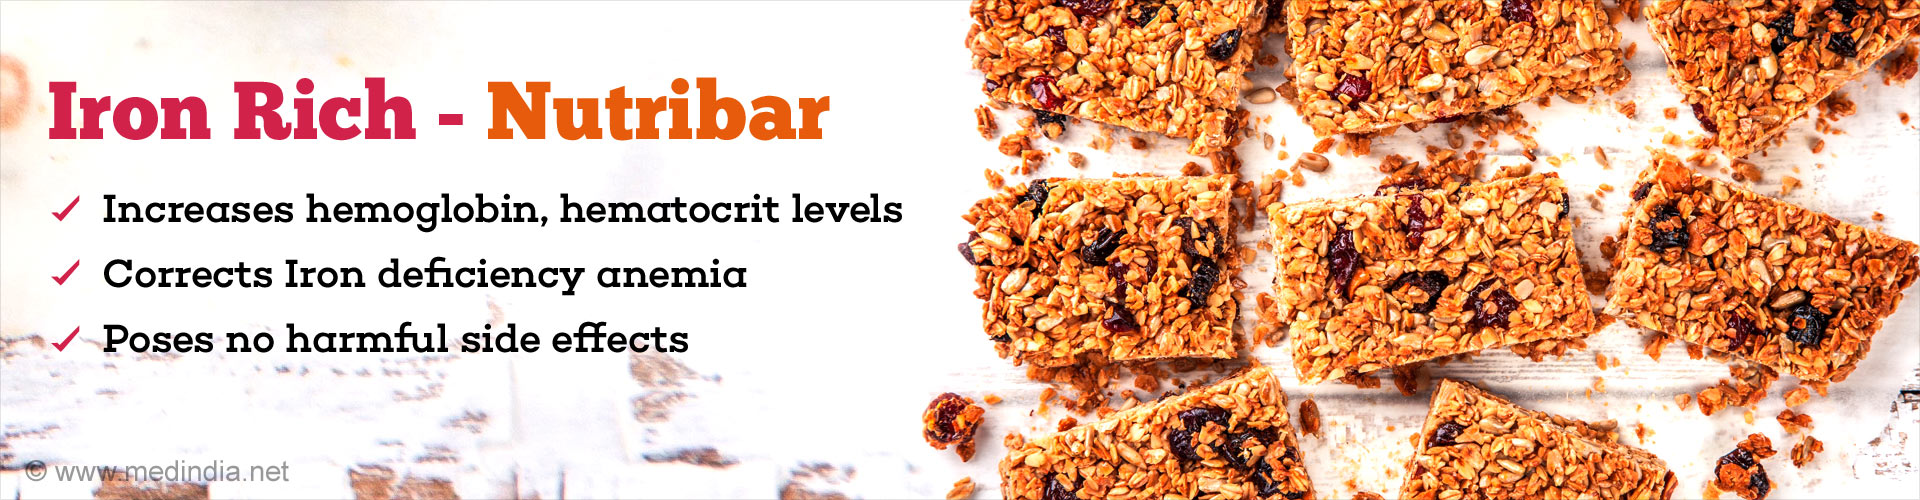 Iron Rich Nutribar